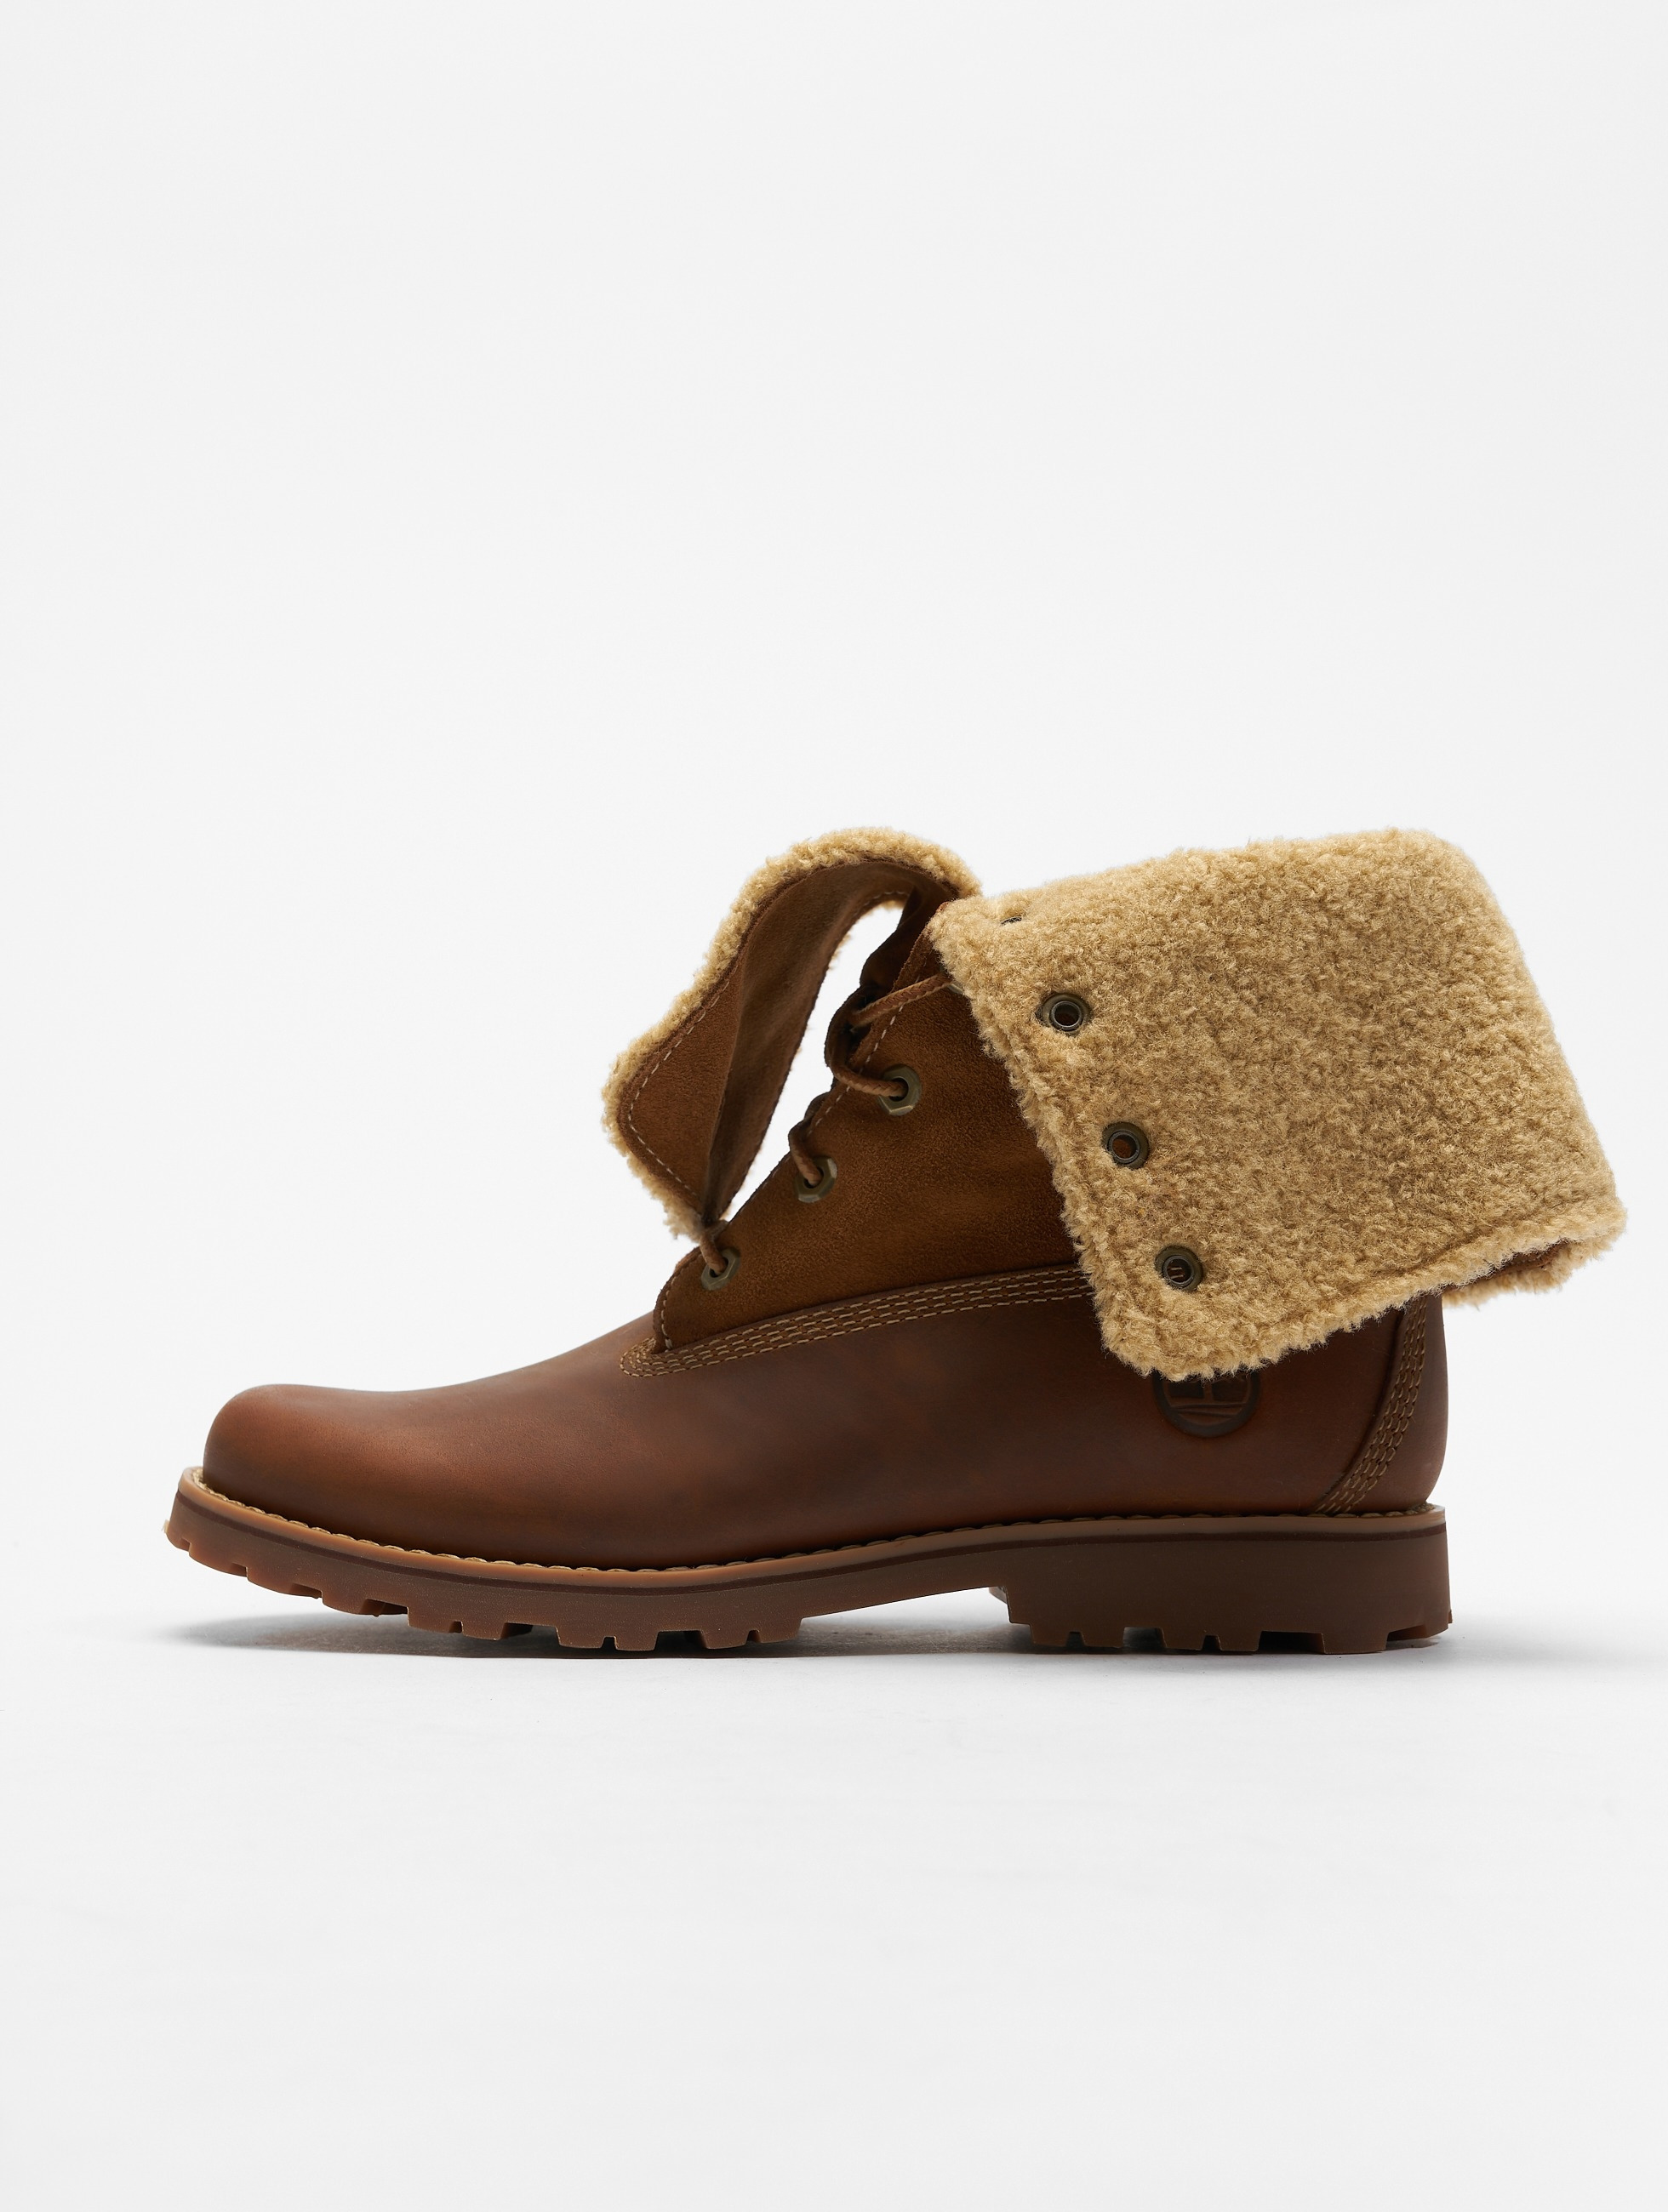 Timberland Frauen Boots Authentics 6 In Shearling in braun